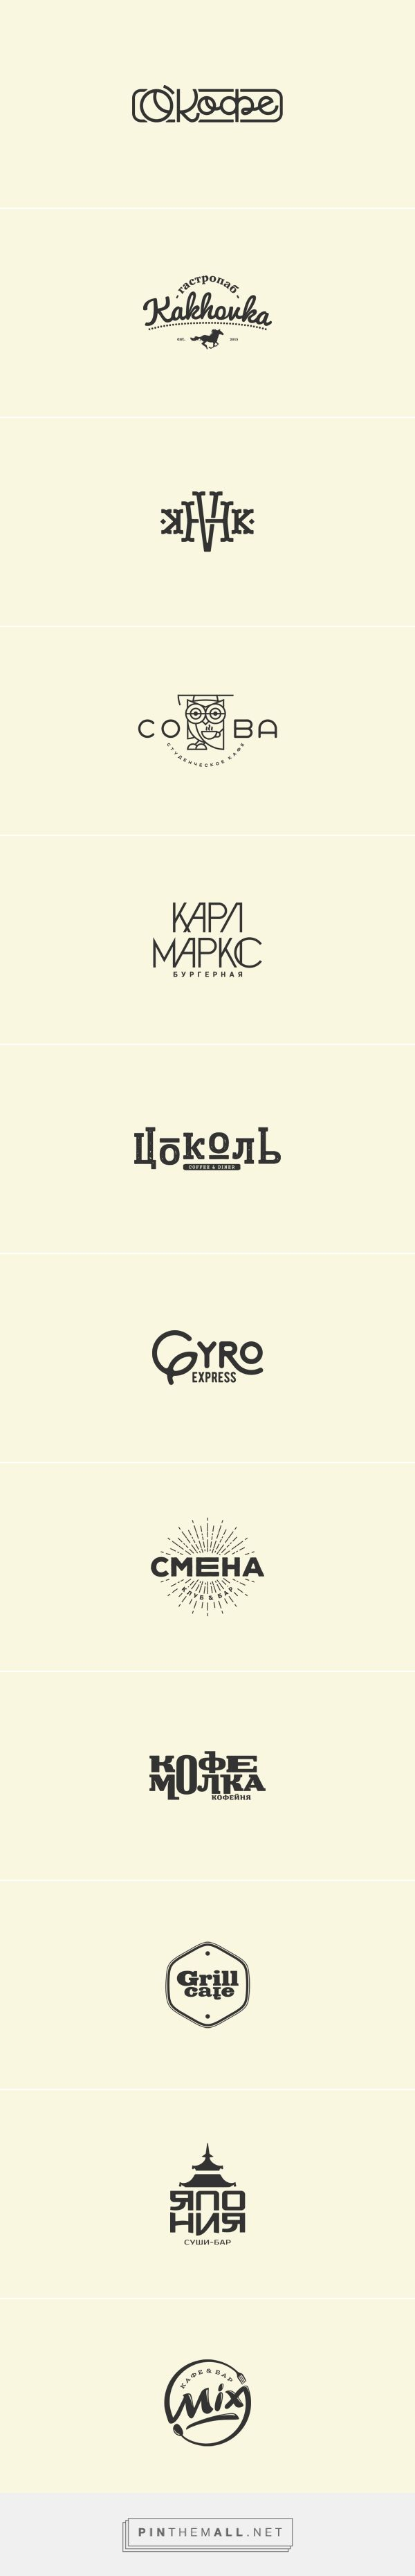 Cafe & Bar logos 2013-2015 on Behance - created via https://pinthemall.net